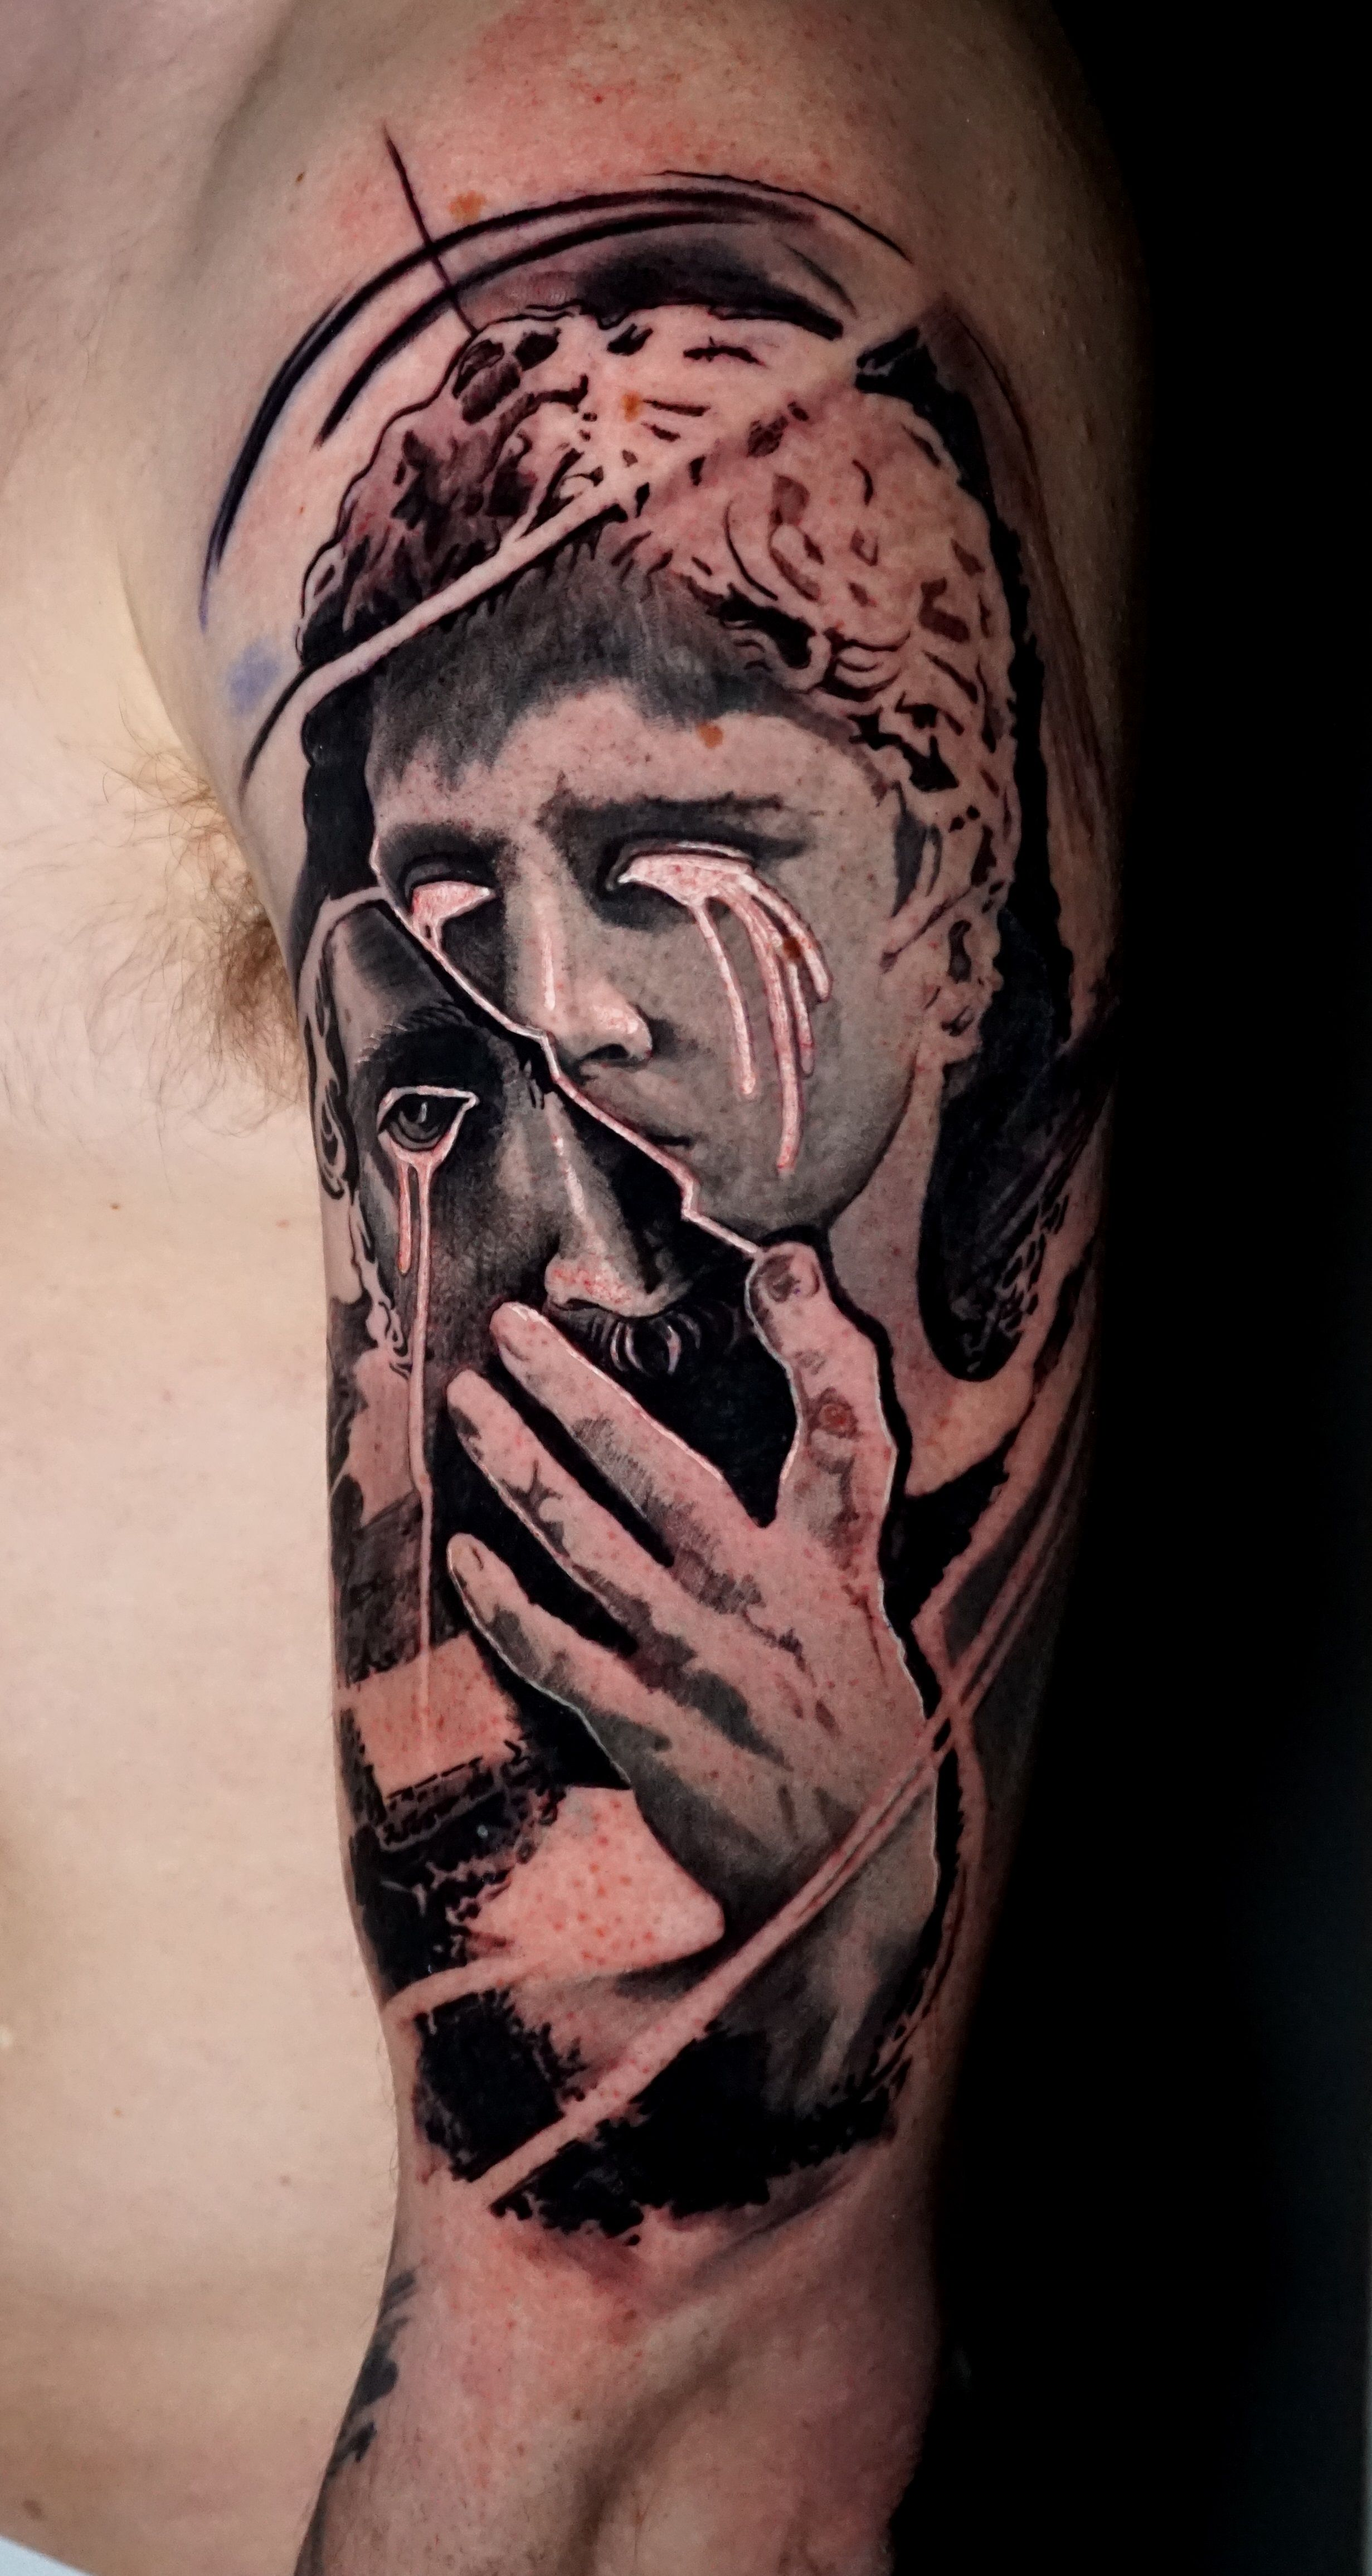 Black And Grey Tattoos In London Full Sleeves Portraits Realism And Surrealism By Alo Loco Uk Black And Grey Tattoos Grey Tattoo Tattoos